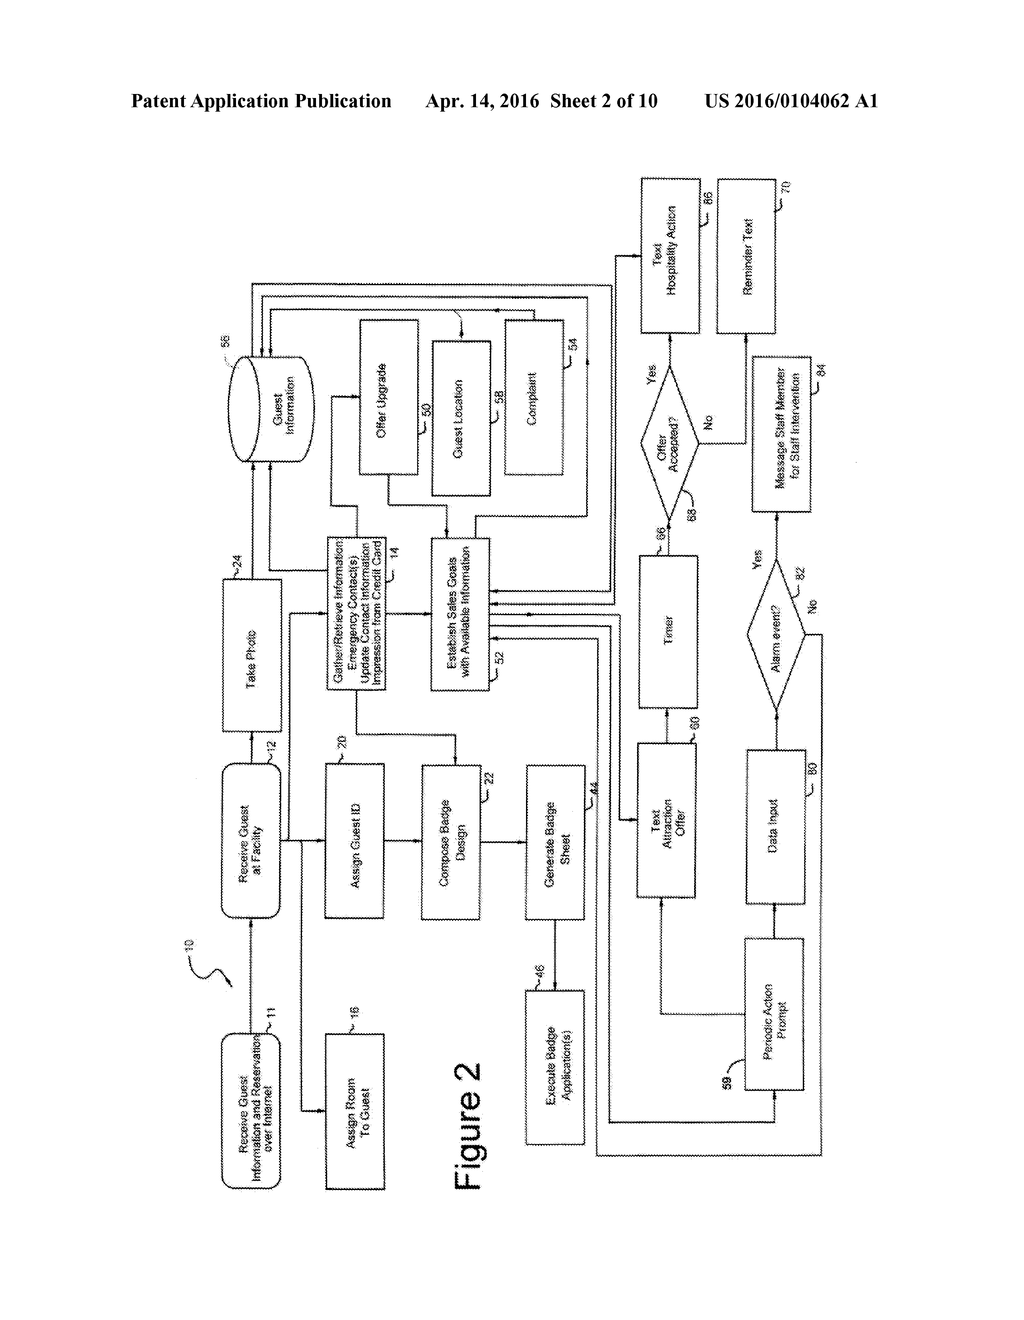 It Infrastructure Schematic Trusted Schematics Diagram Circuit Symbols For Diagramming Lucidchart Temporary Cutaneous Information Device Associated Method And Resort Drawing